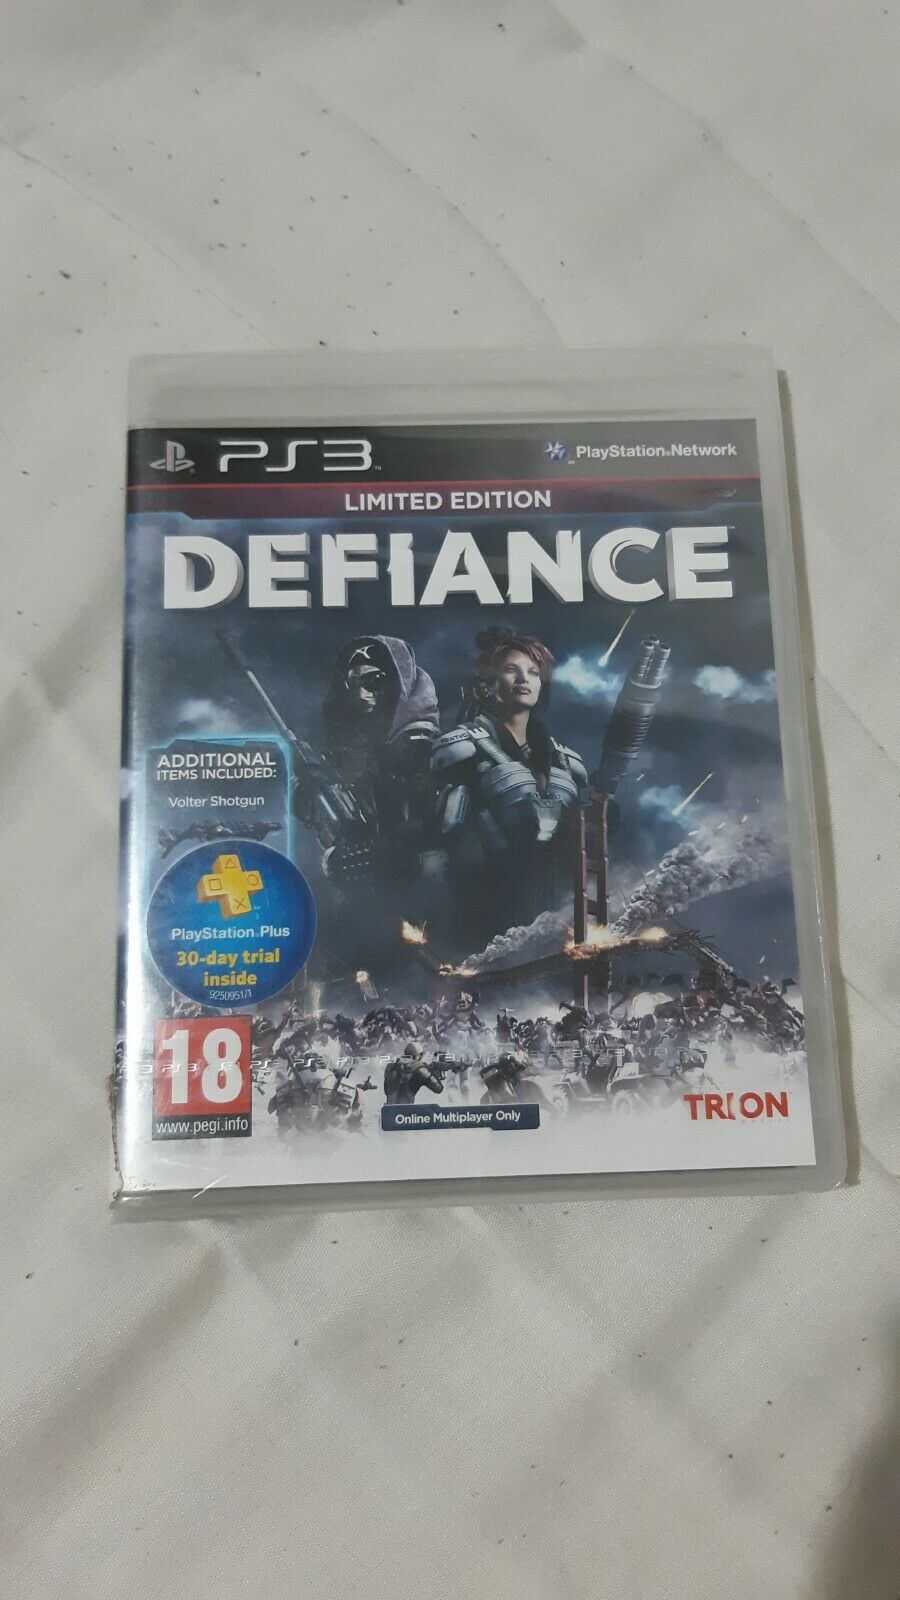 [PS3] Defiance Limited Edition (PAL) New & Sealed!